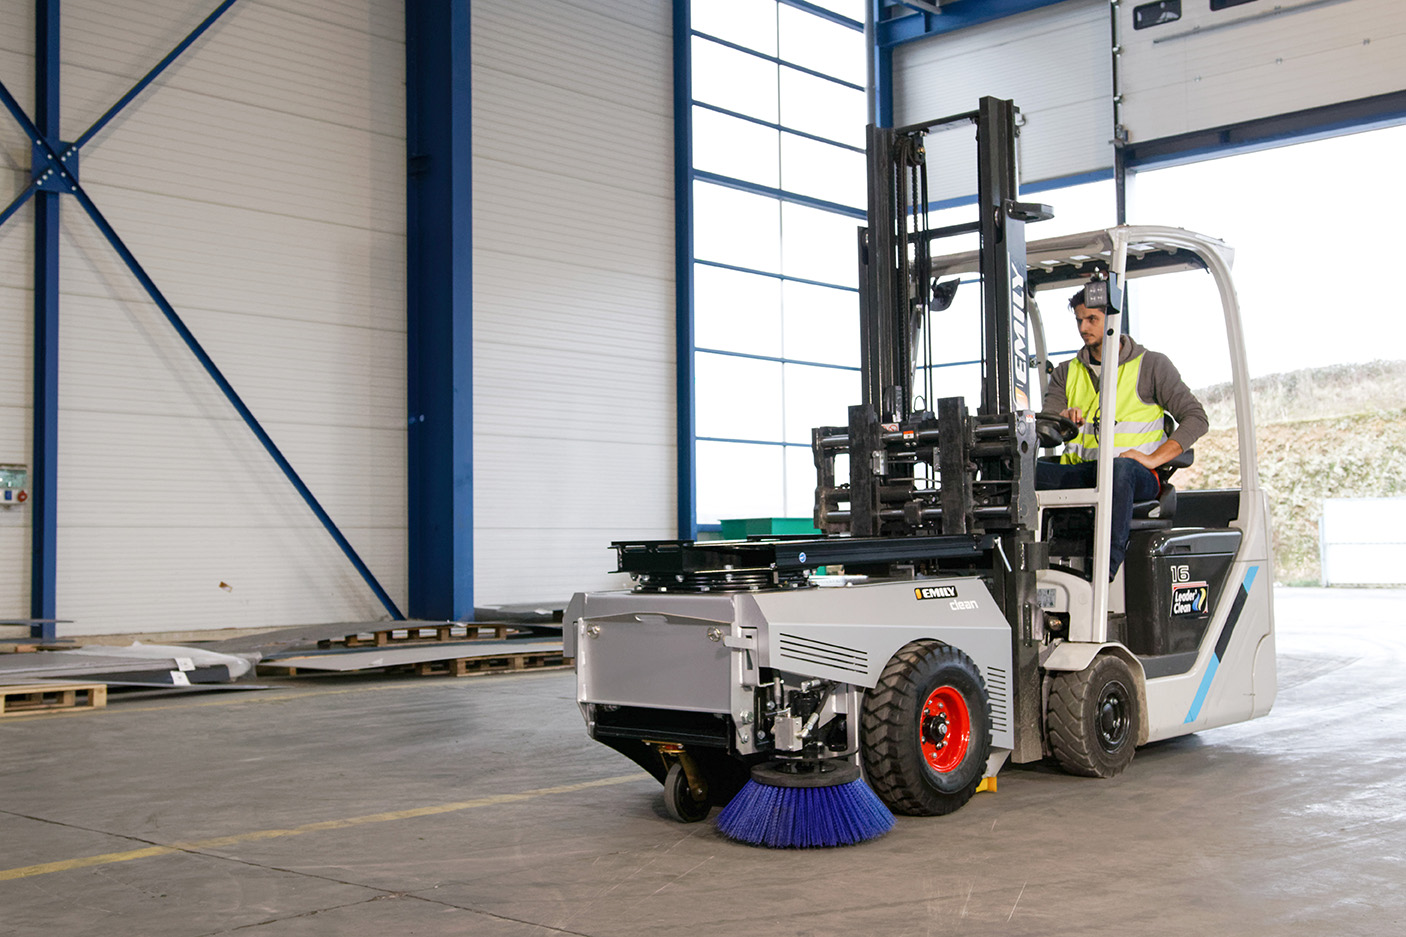 Clean'Box operates by simply pushing with the forklift truck